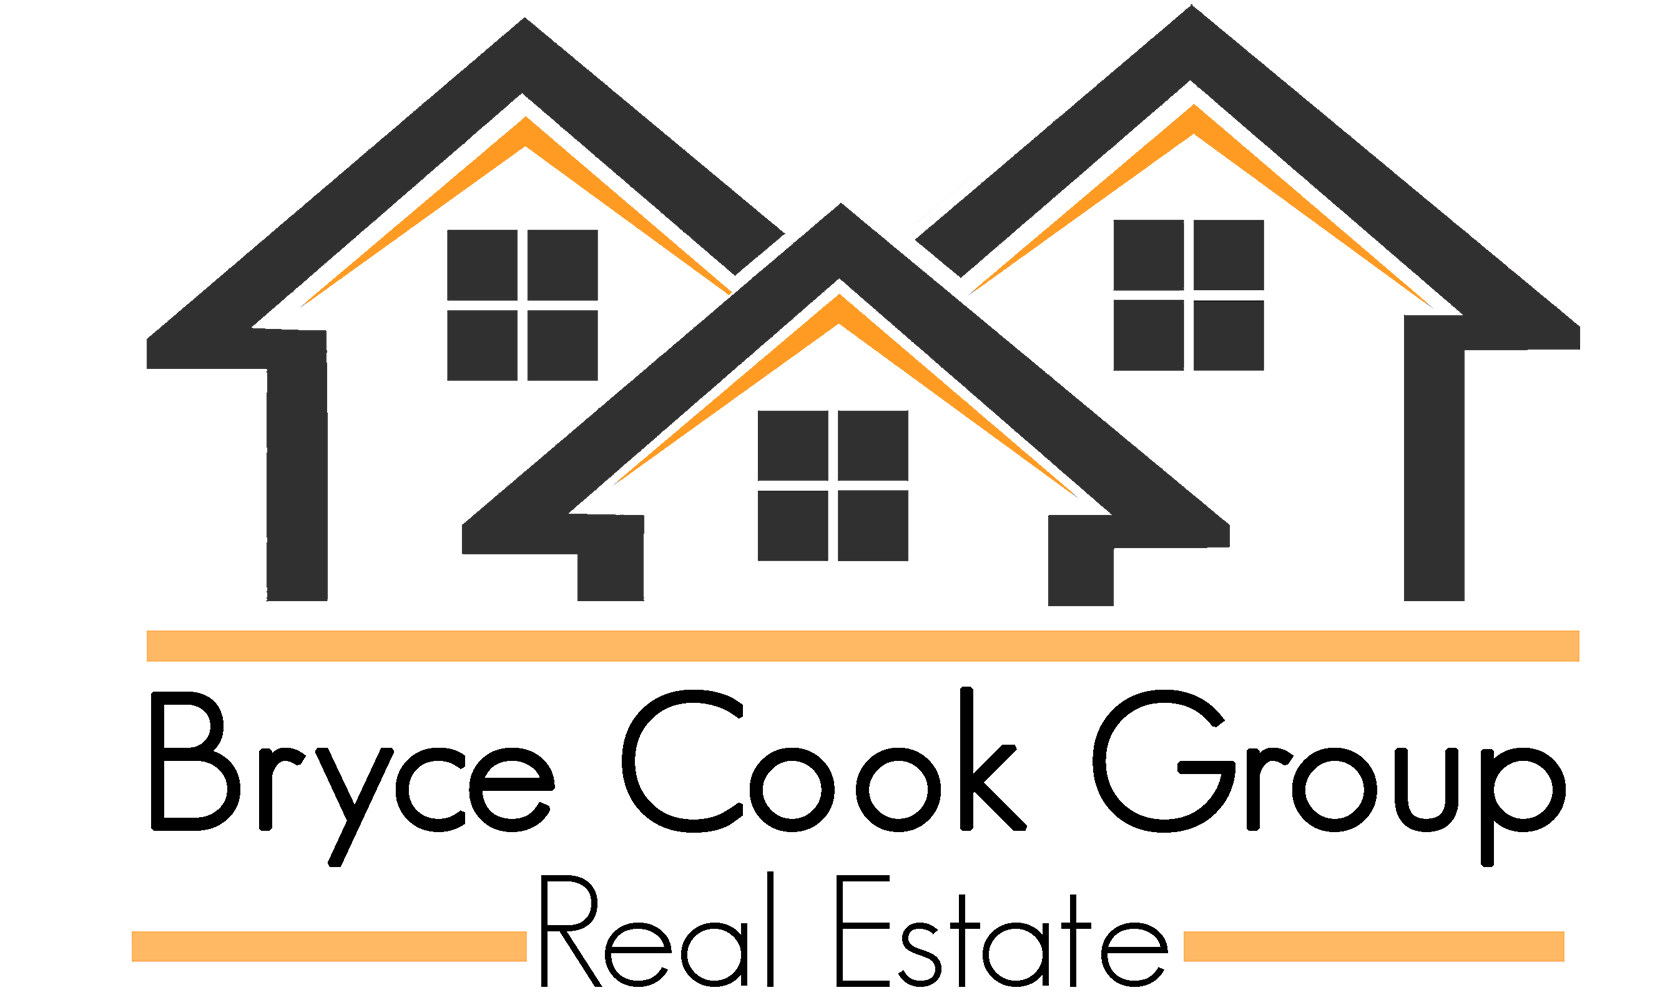 House with foundation clipart picture free stock Business Partners | Carlmont Academic Foundation picture free stock